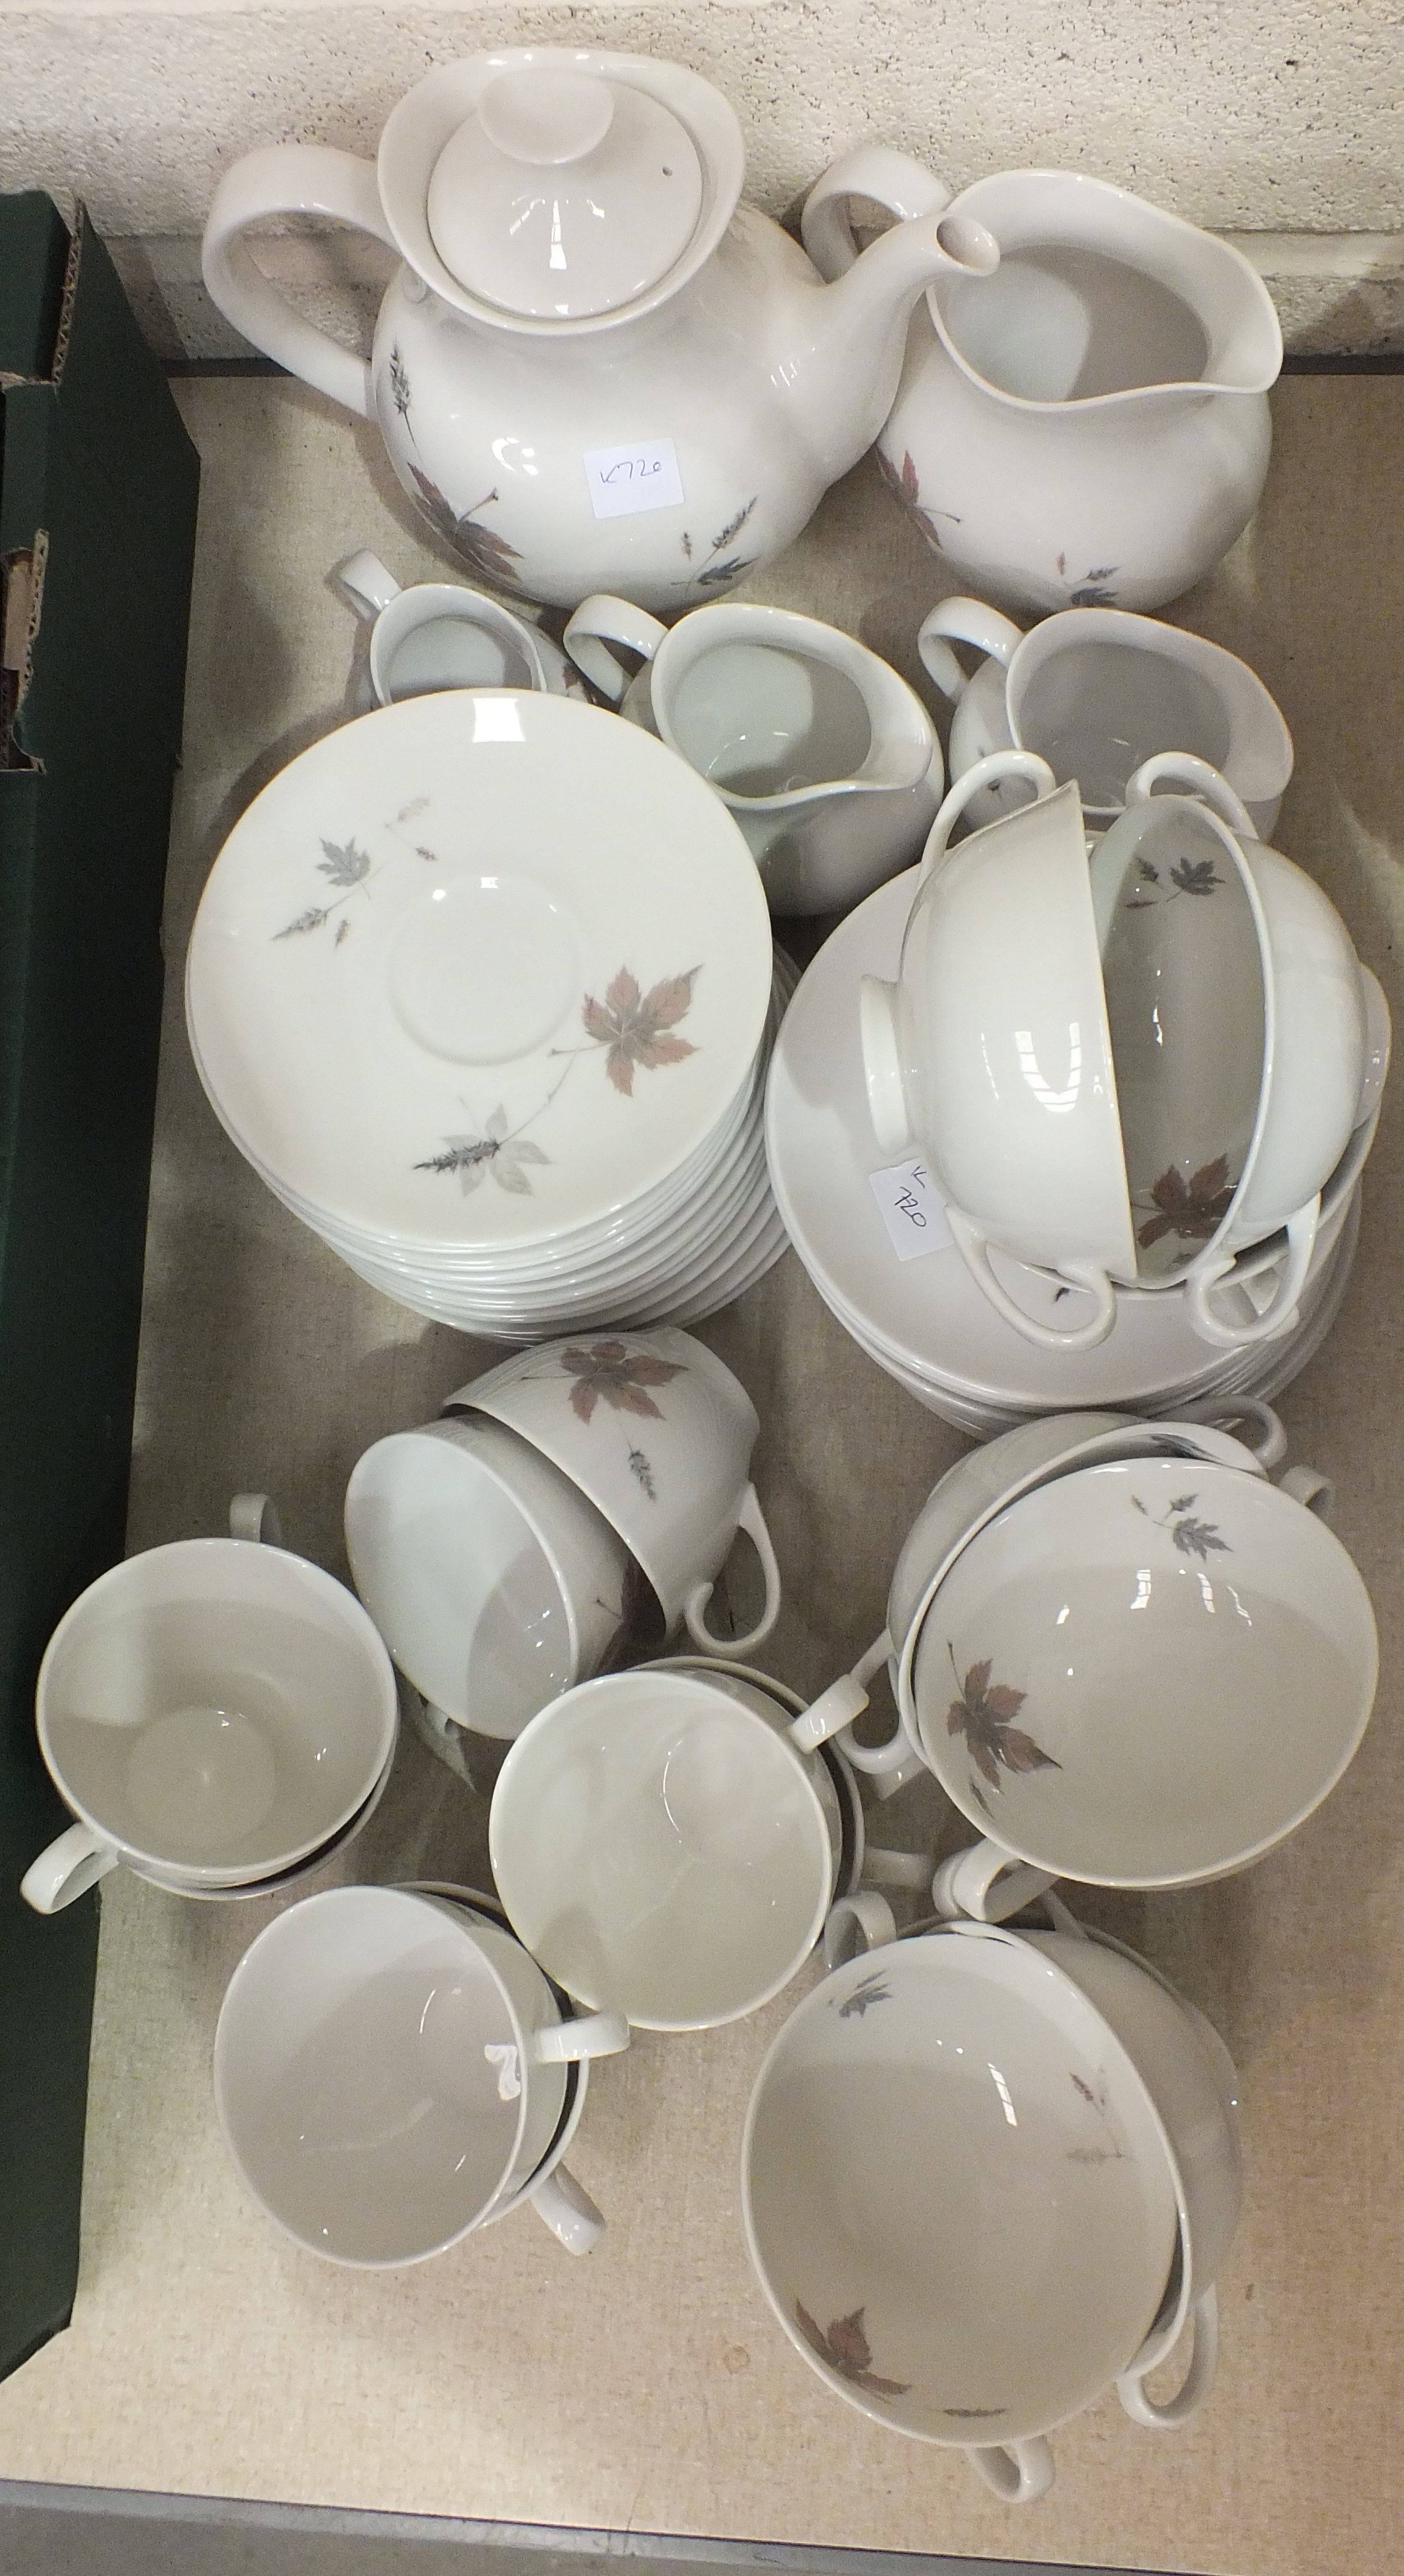 Lot 63 - A Royal Doulton dinner and tea part-service in the 'Tumbling Leaves' pattern, approximately 80